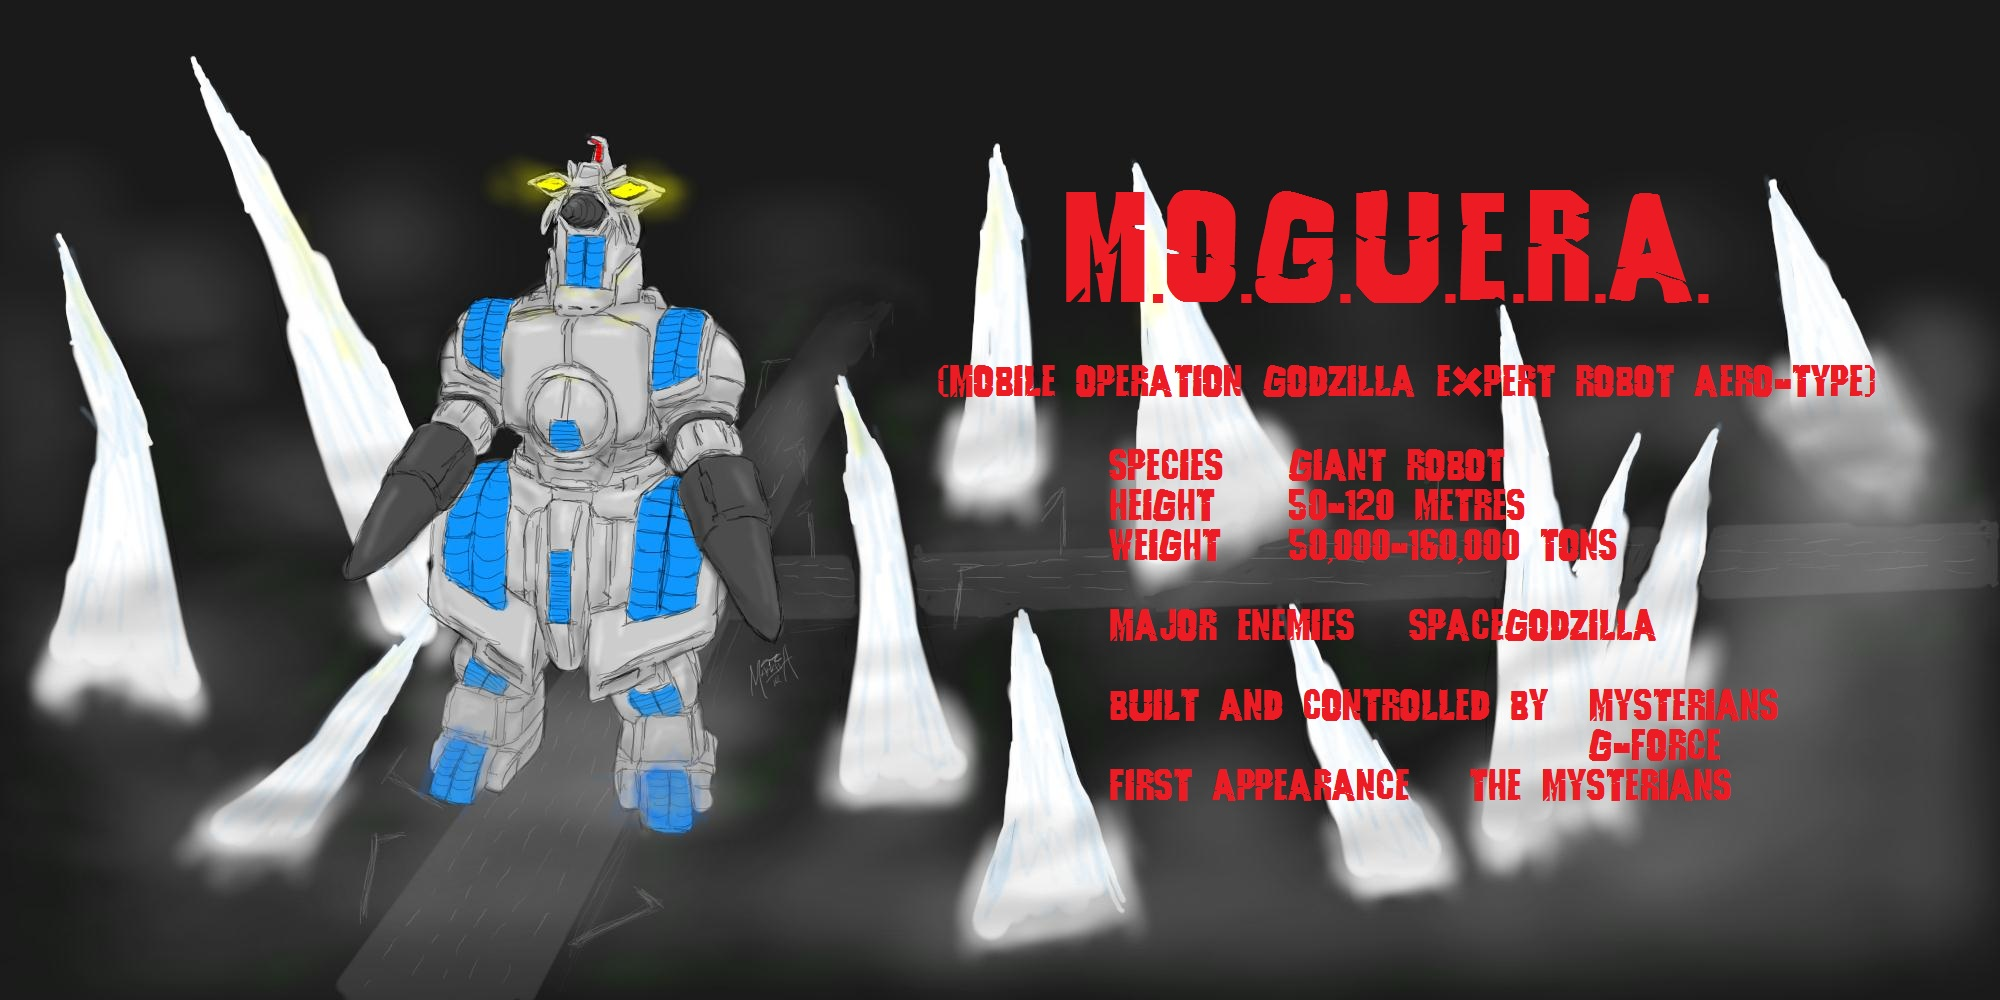 M.O.G.U.E.R.A. by PickledGenius